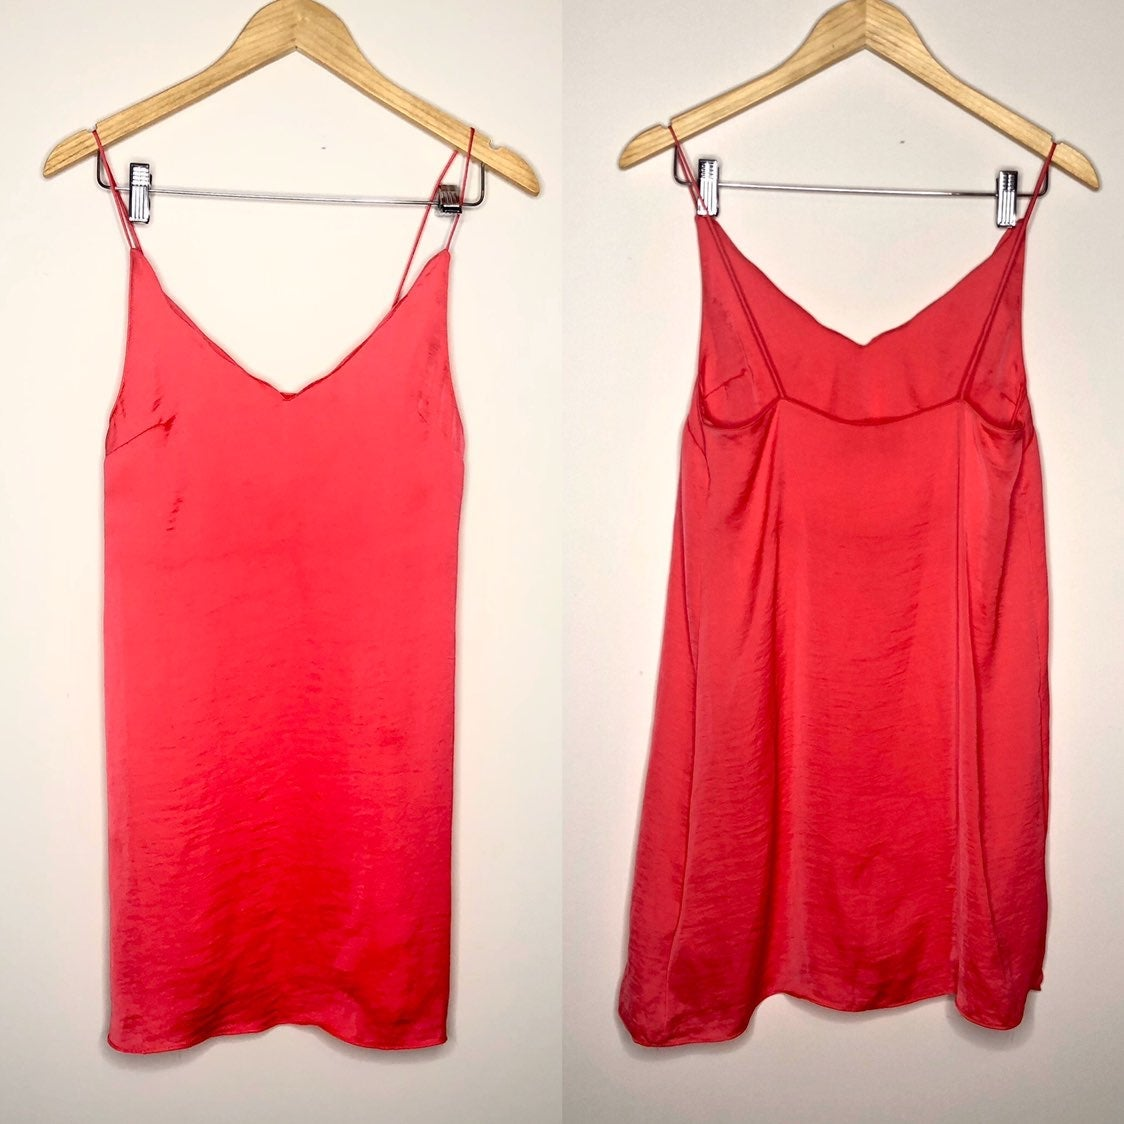 Topshop Pink Camisole in Sz 2